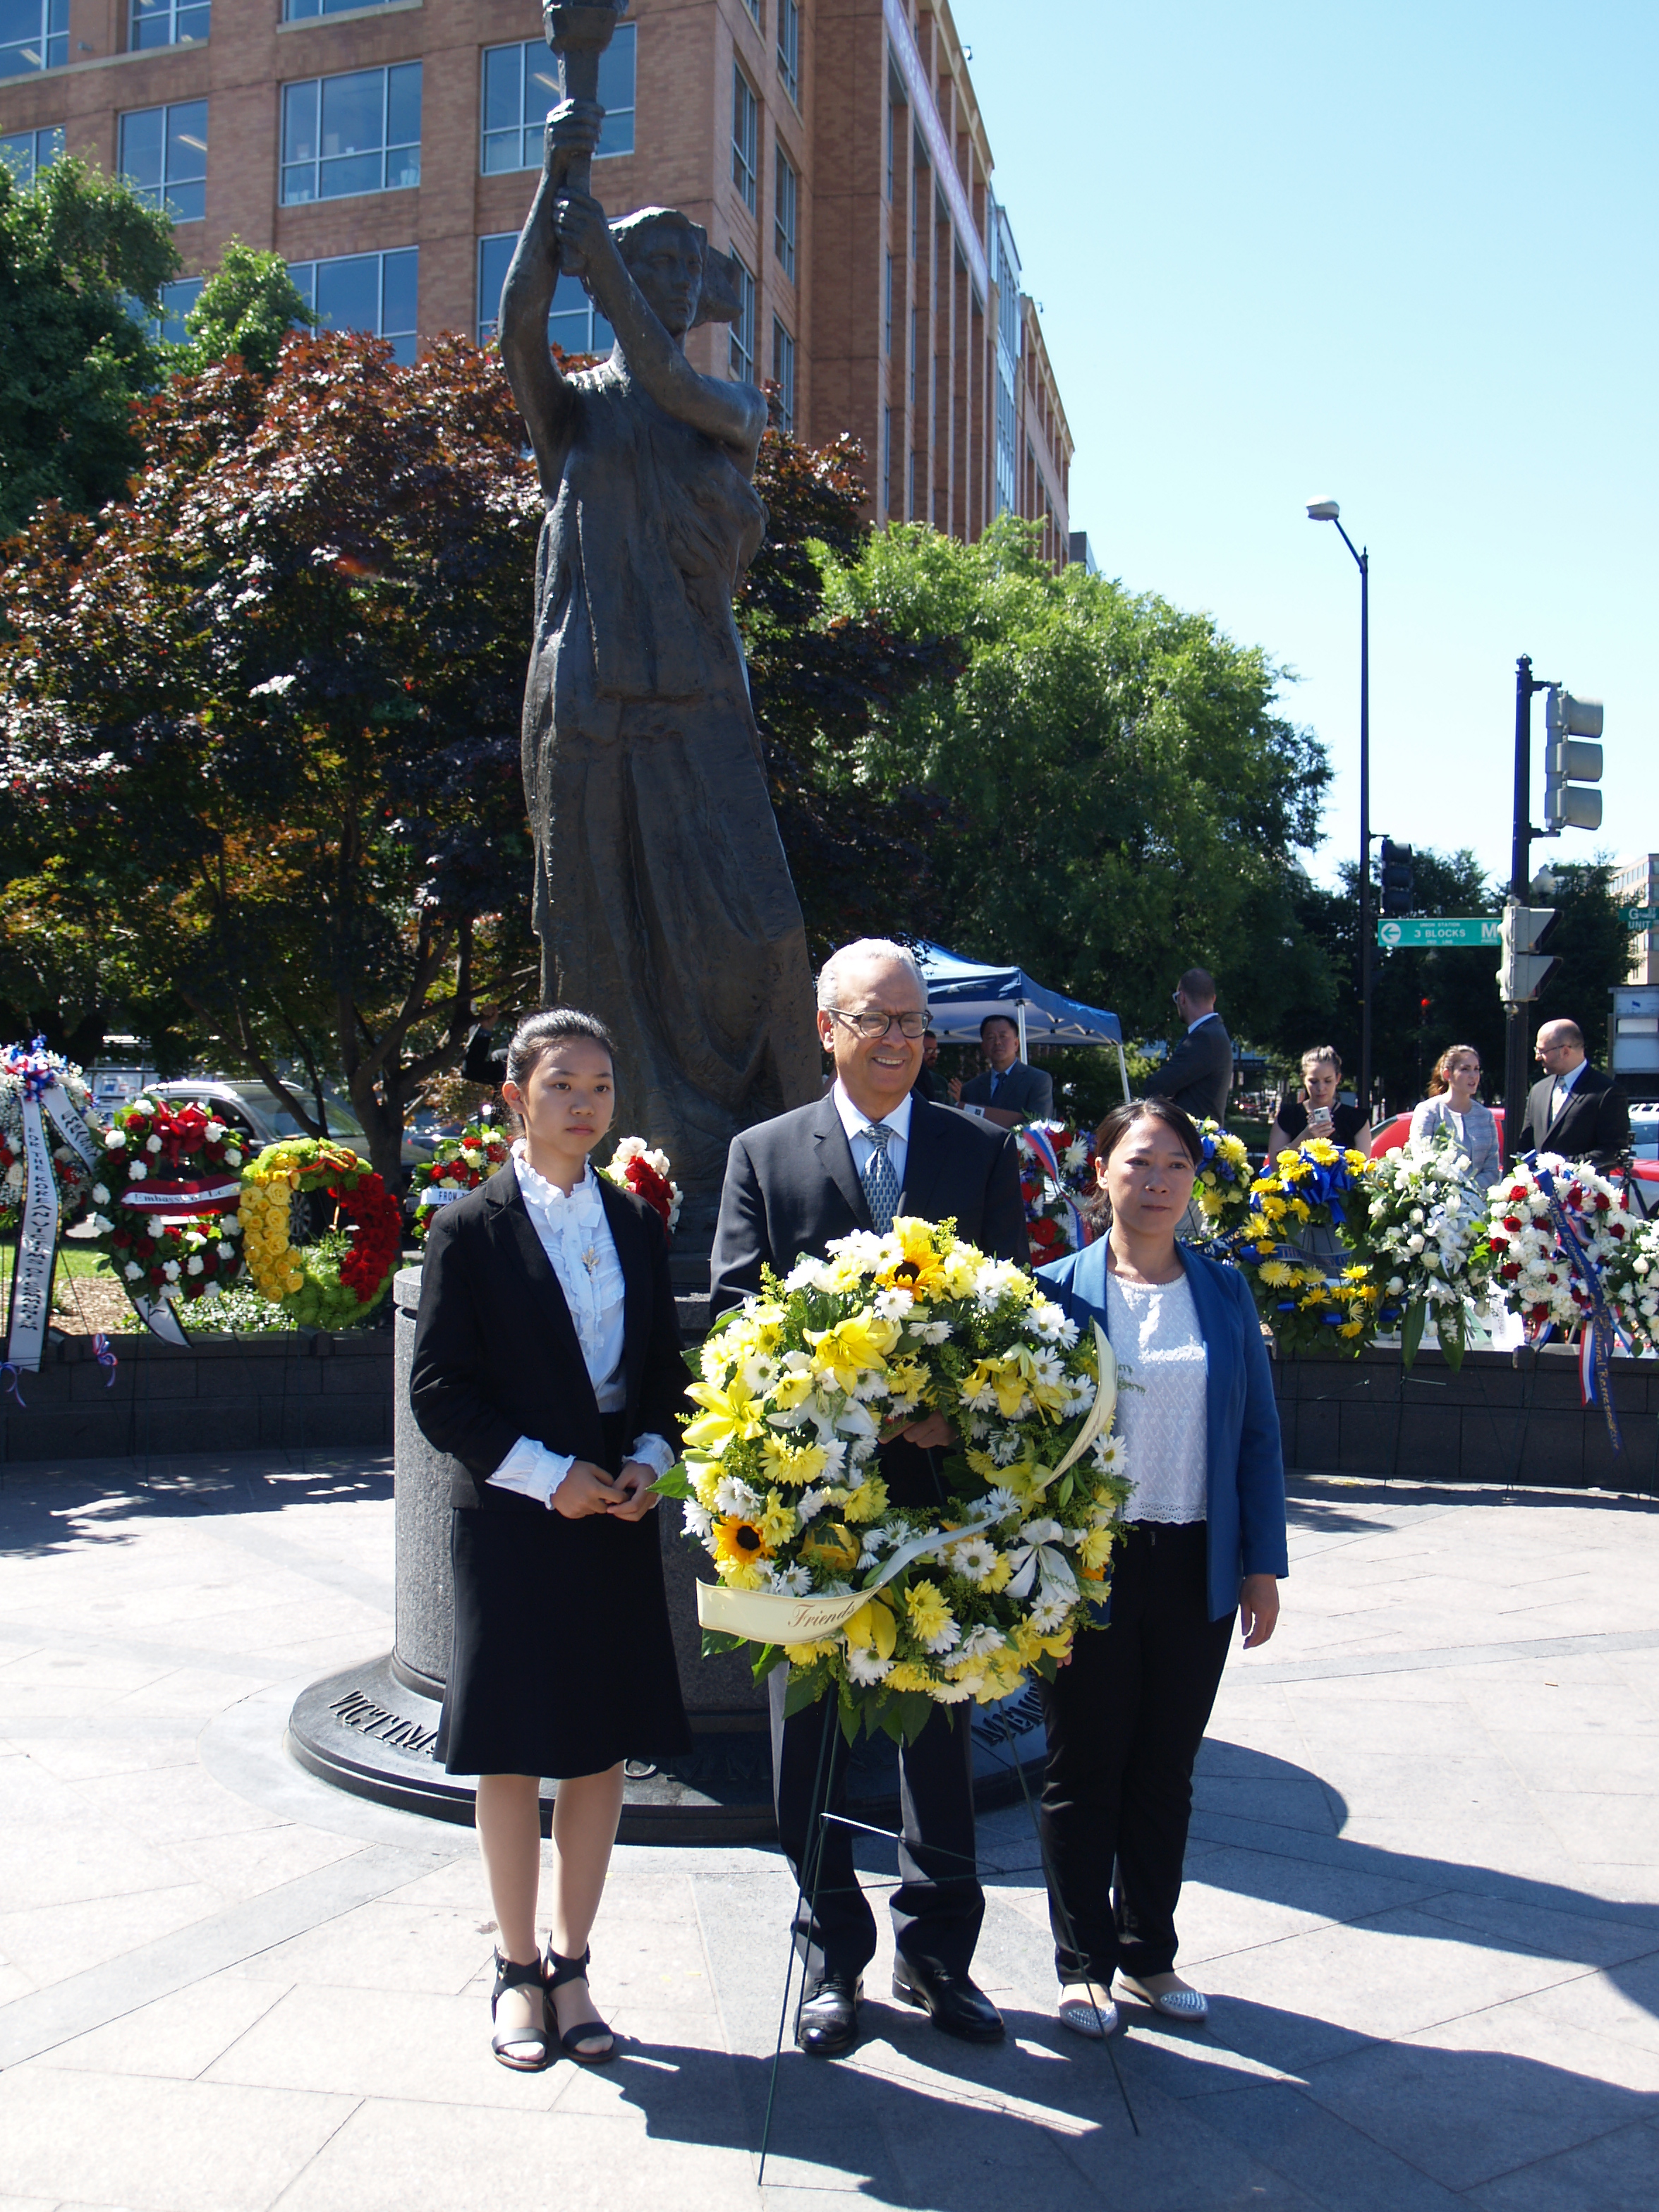 Xu Xinyang (L), Alan Adler, and Chi Lihua present a wreath remembering the victims of communism at the tenth annual Truman-Reagan Medal of Freedom and Roll Call of Nations Ceremony, on June 9 in Washington, D.C. Adler is the executive director of Friends of Falun Gong, Xu and Li are practitioners of Falun Gong who suffered persecution in China for their beliefs. (Kitty Wang, NTDTV)